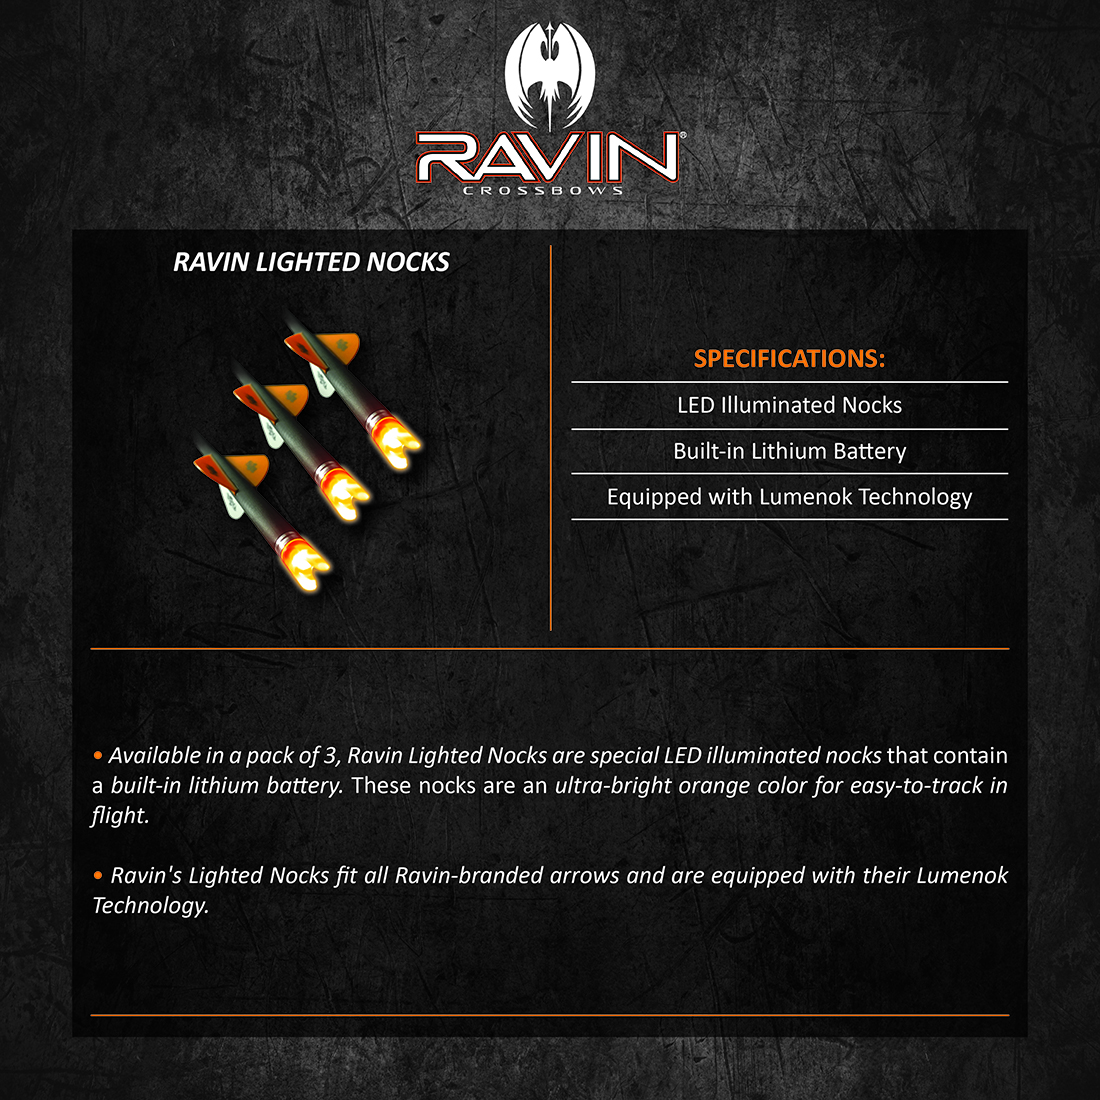 Ravin_Lighted_Nocks_Product_Description